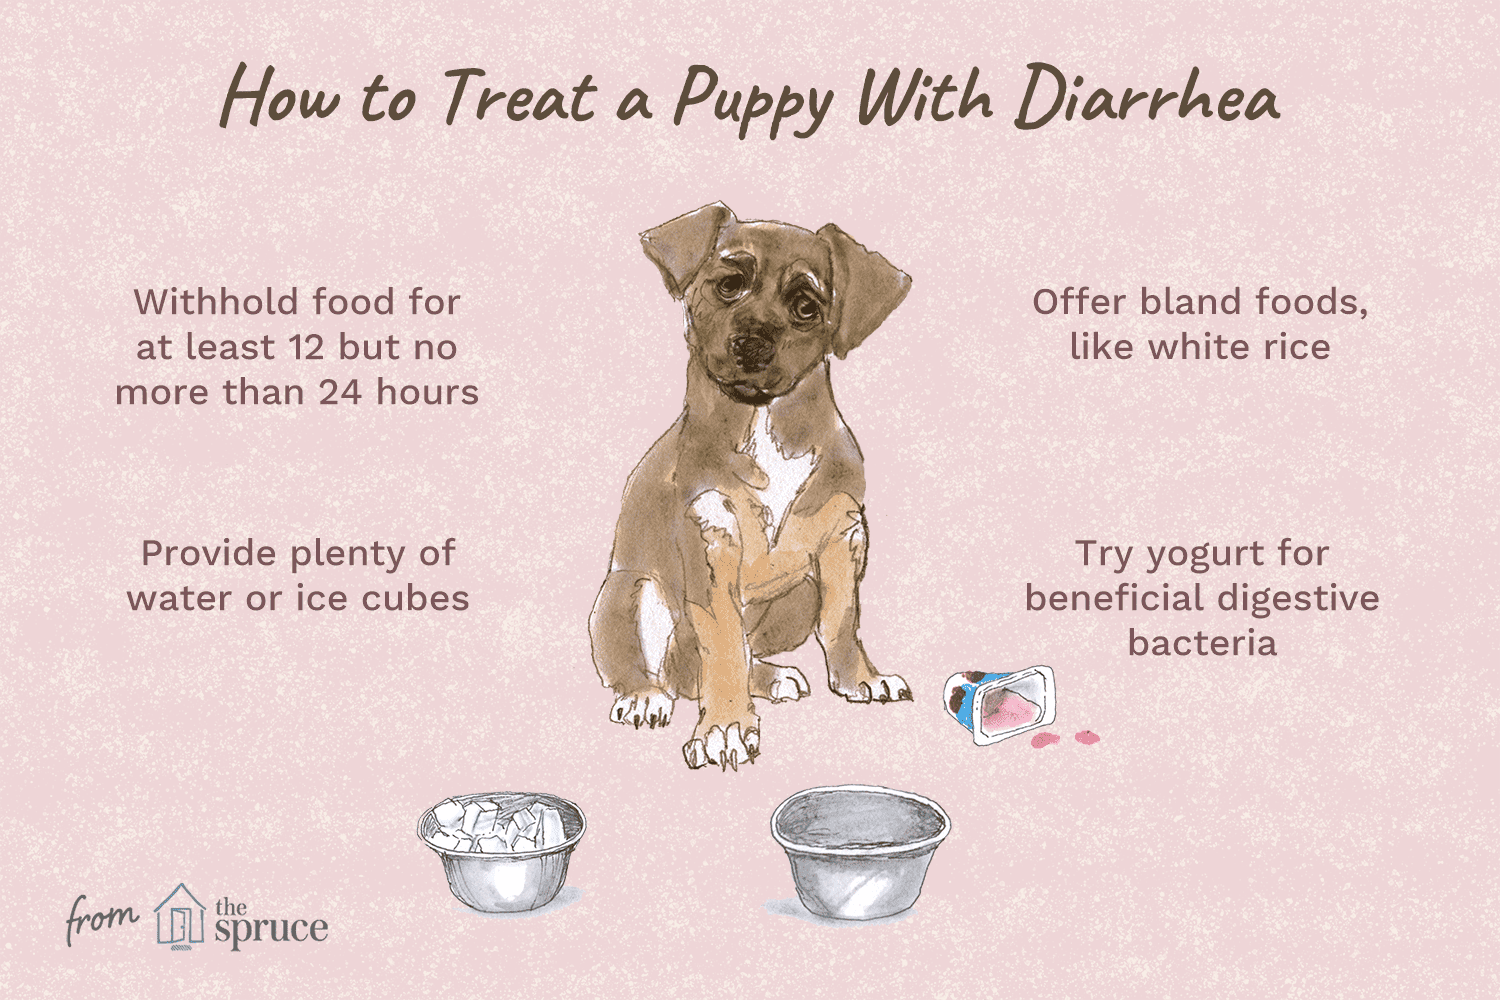 What to Do if Your Puppy Has Diarrhea